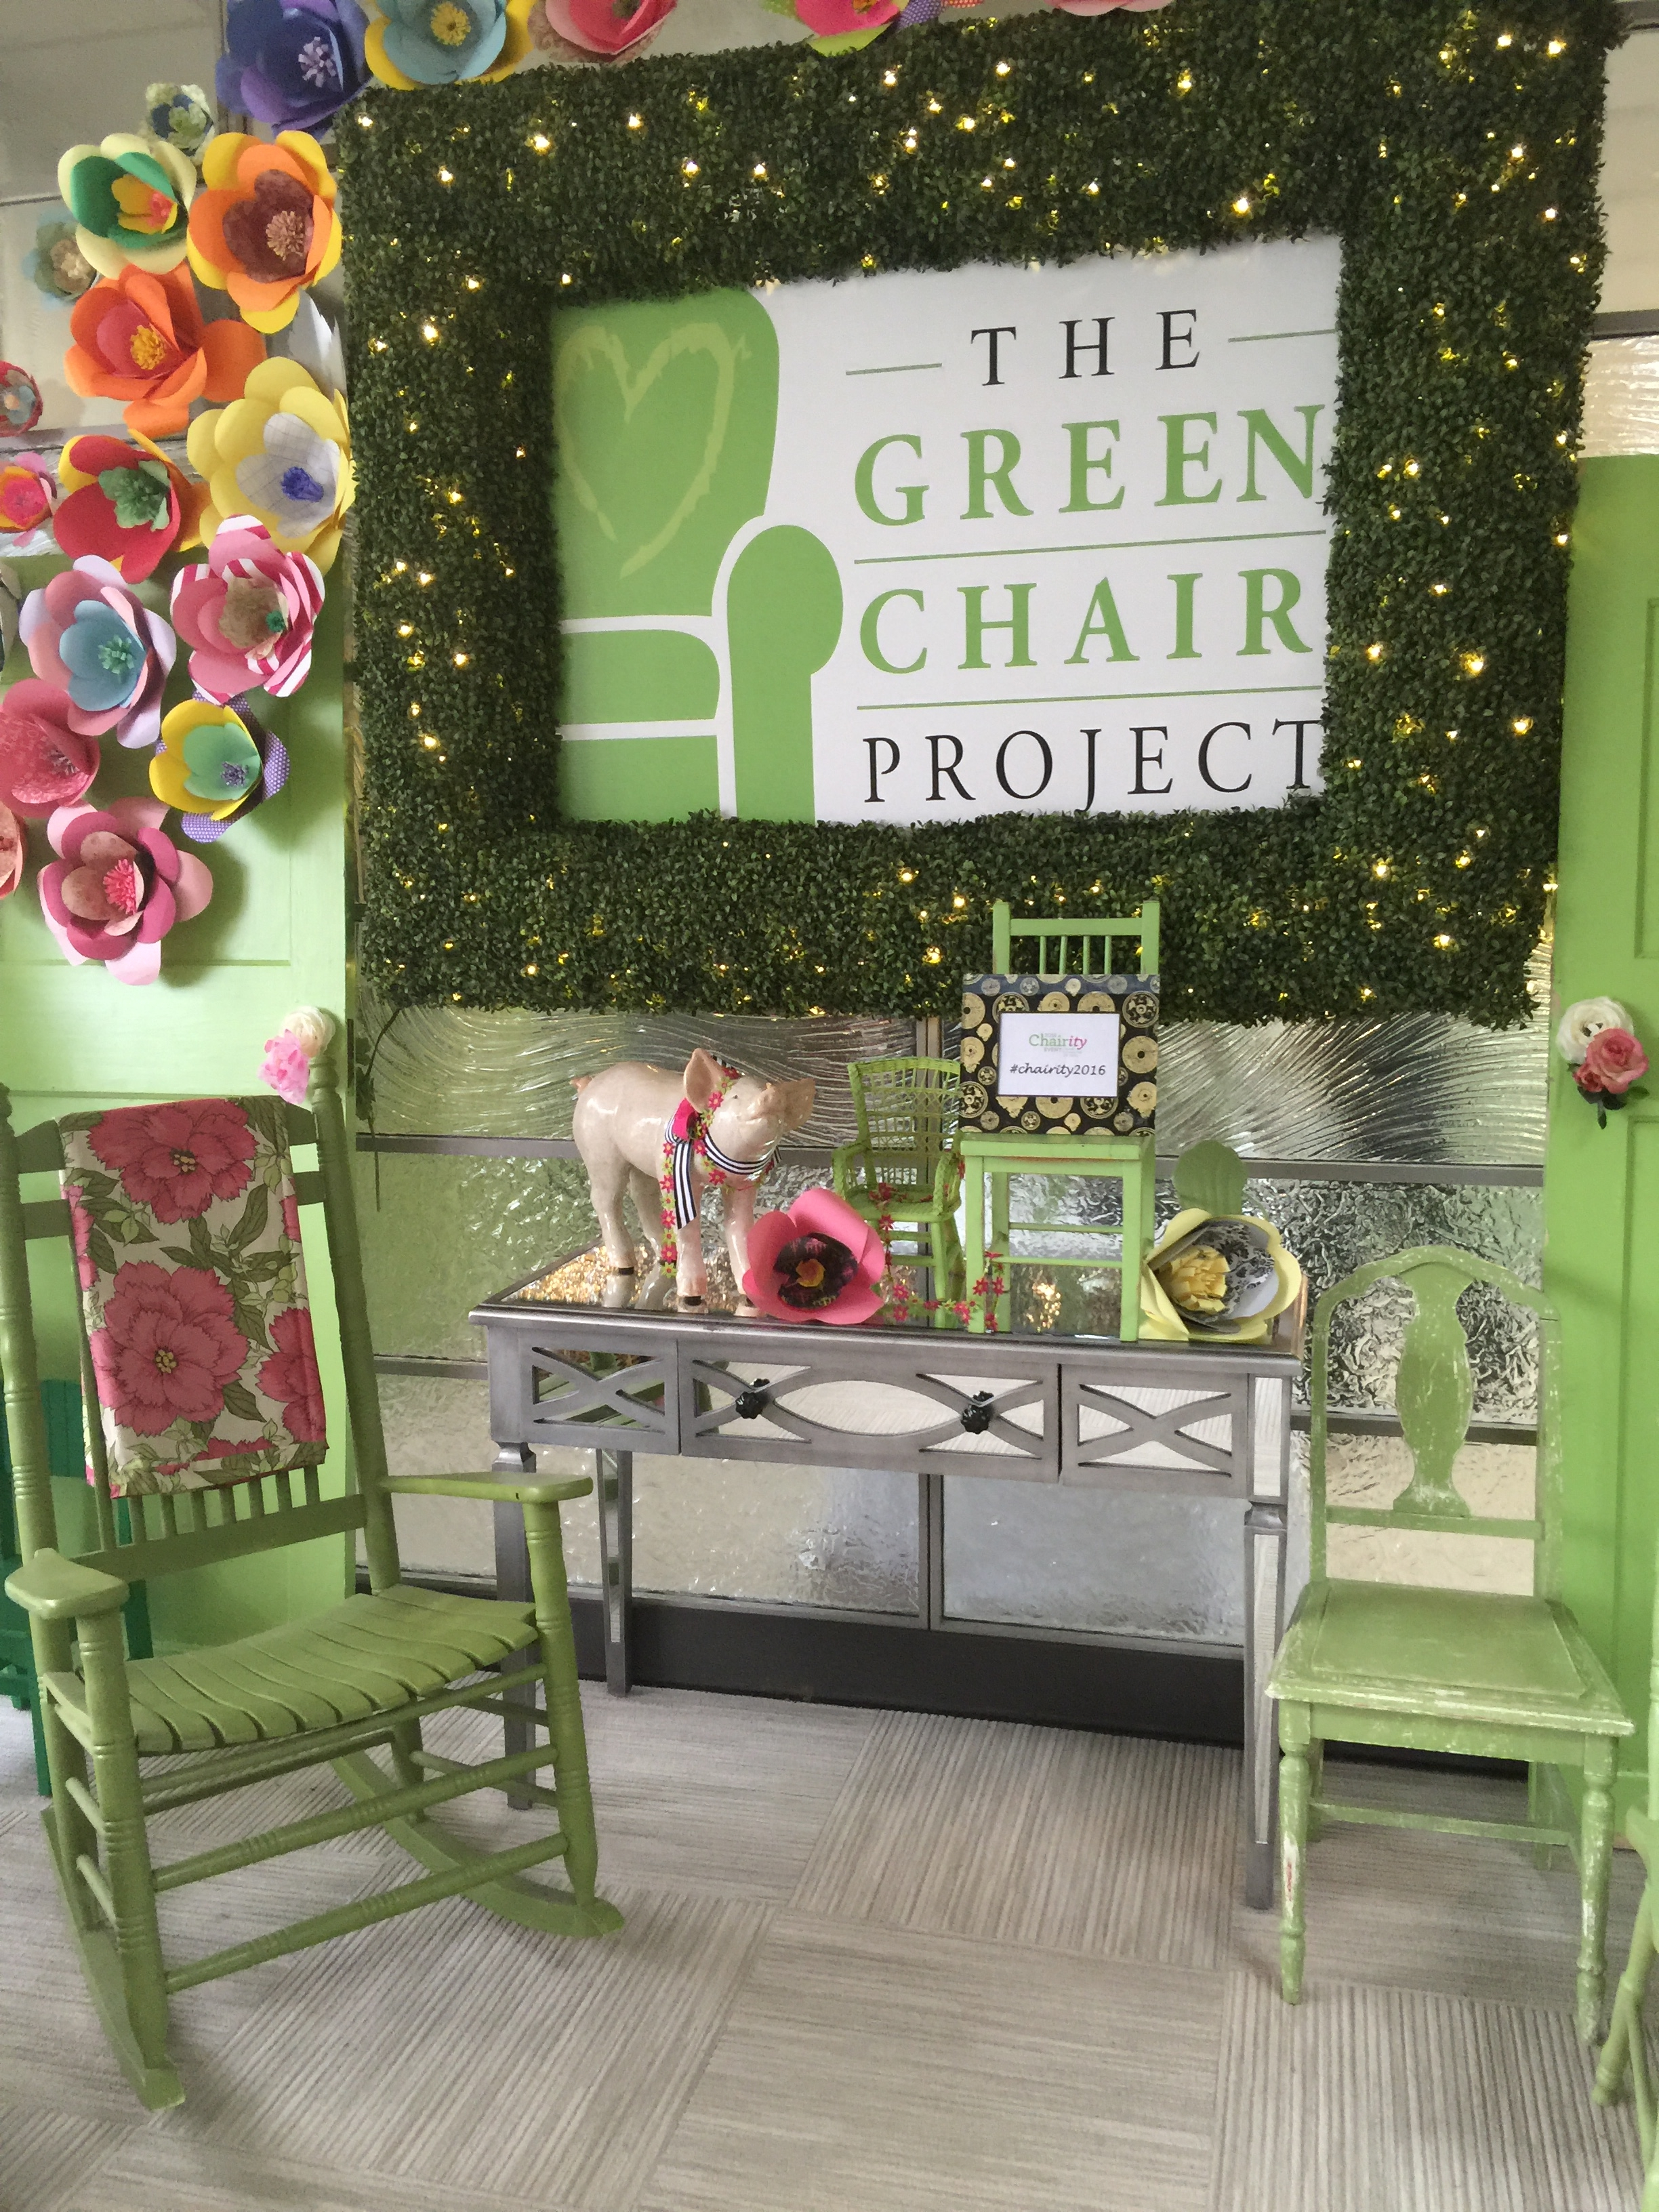 The Green Chair Project Catering Works